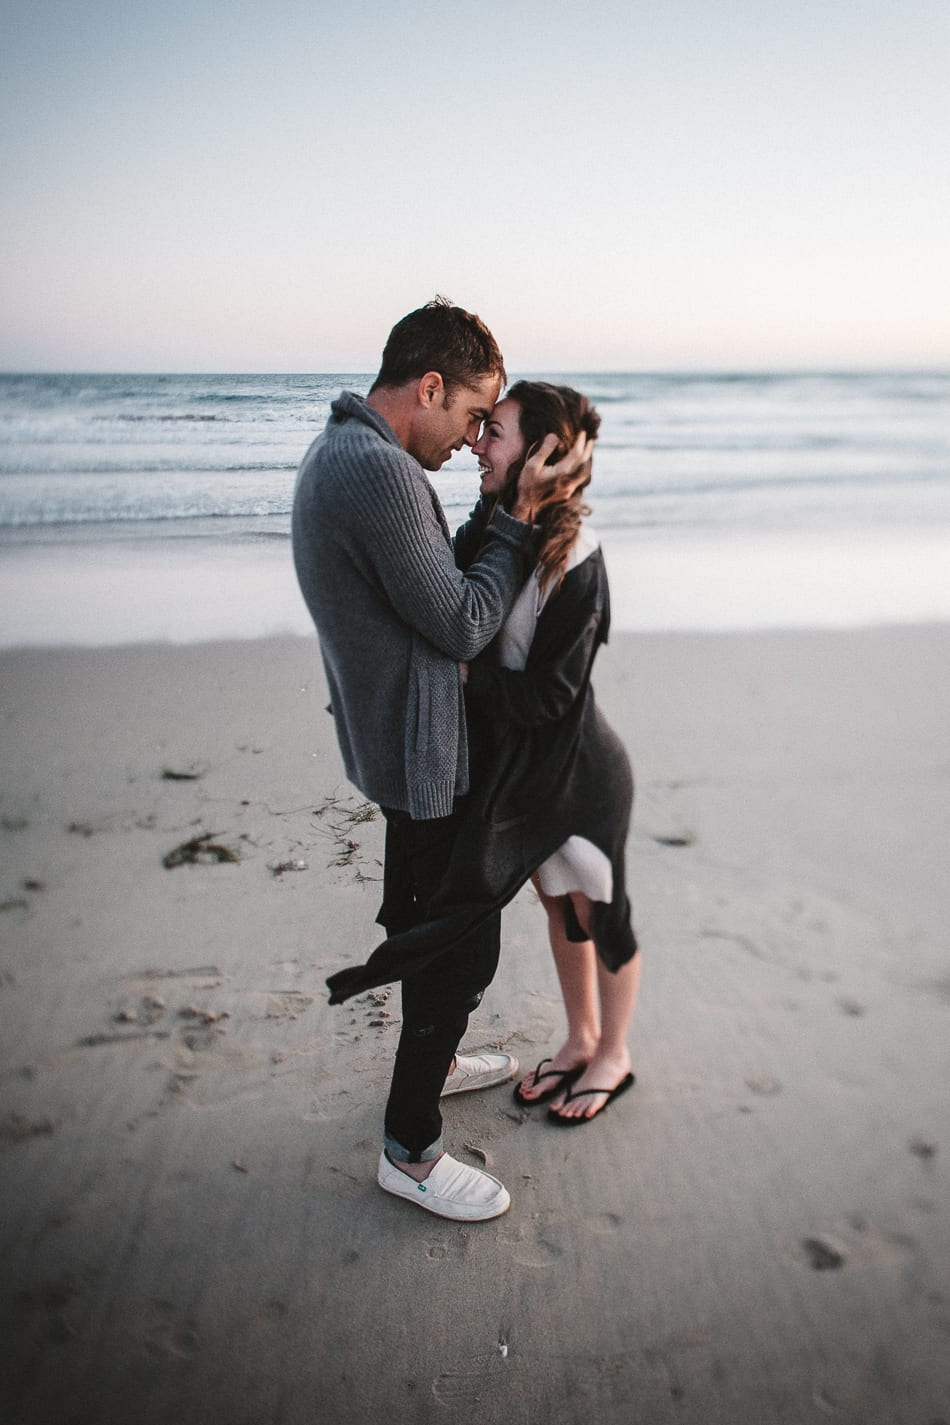 jason-alyssa-huntington-beach-california-engagement-photographer-42